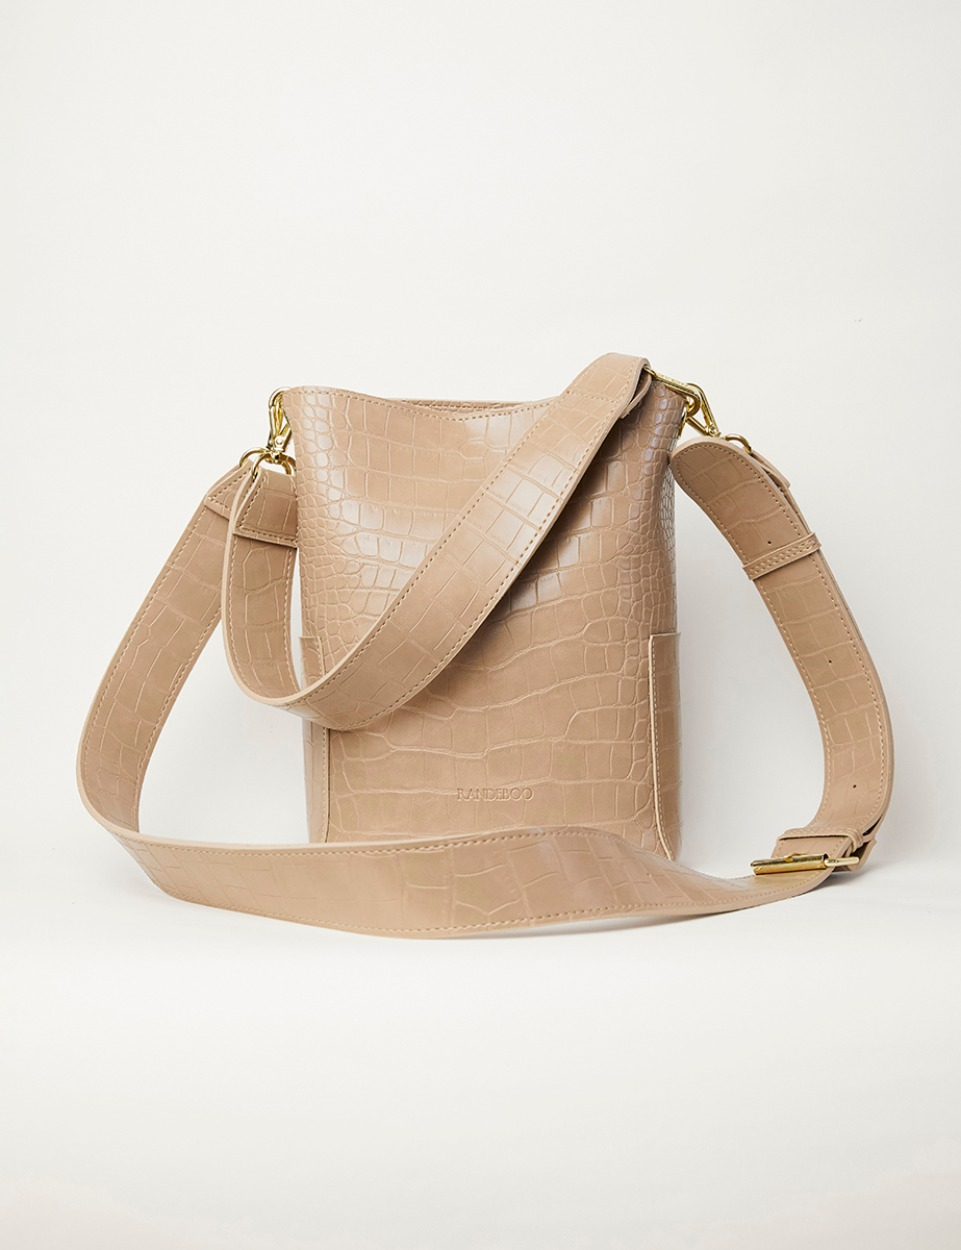 RB croco bucket bag (beige)